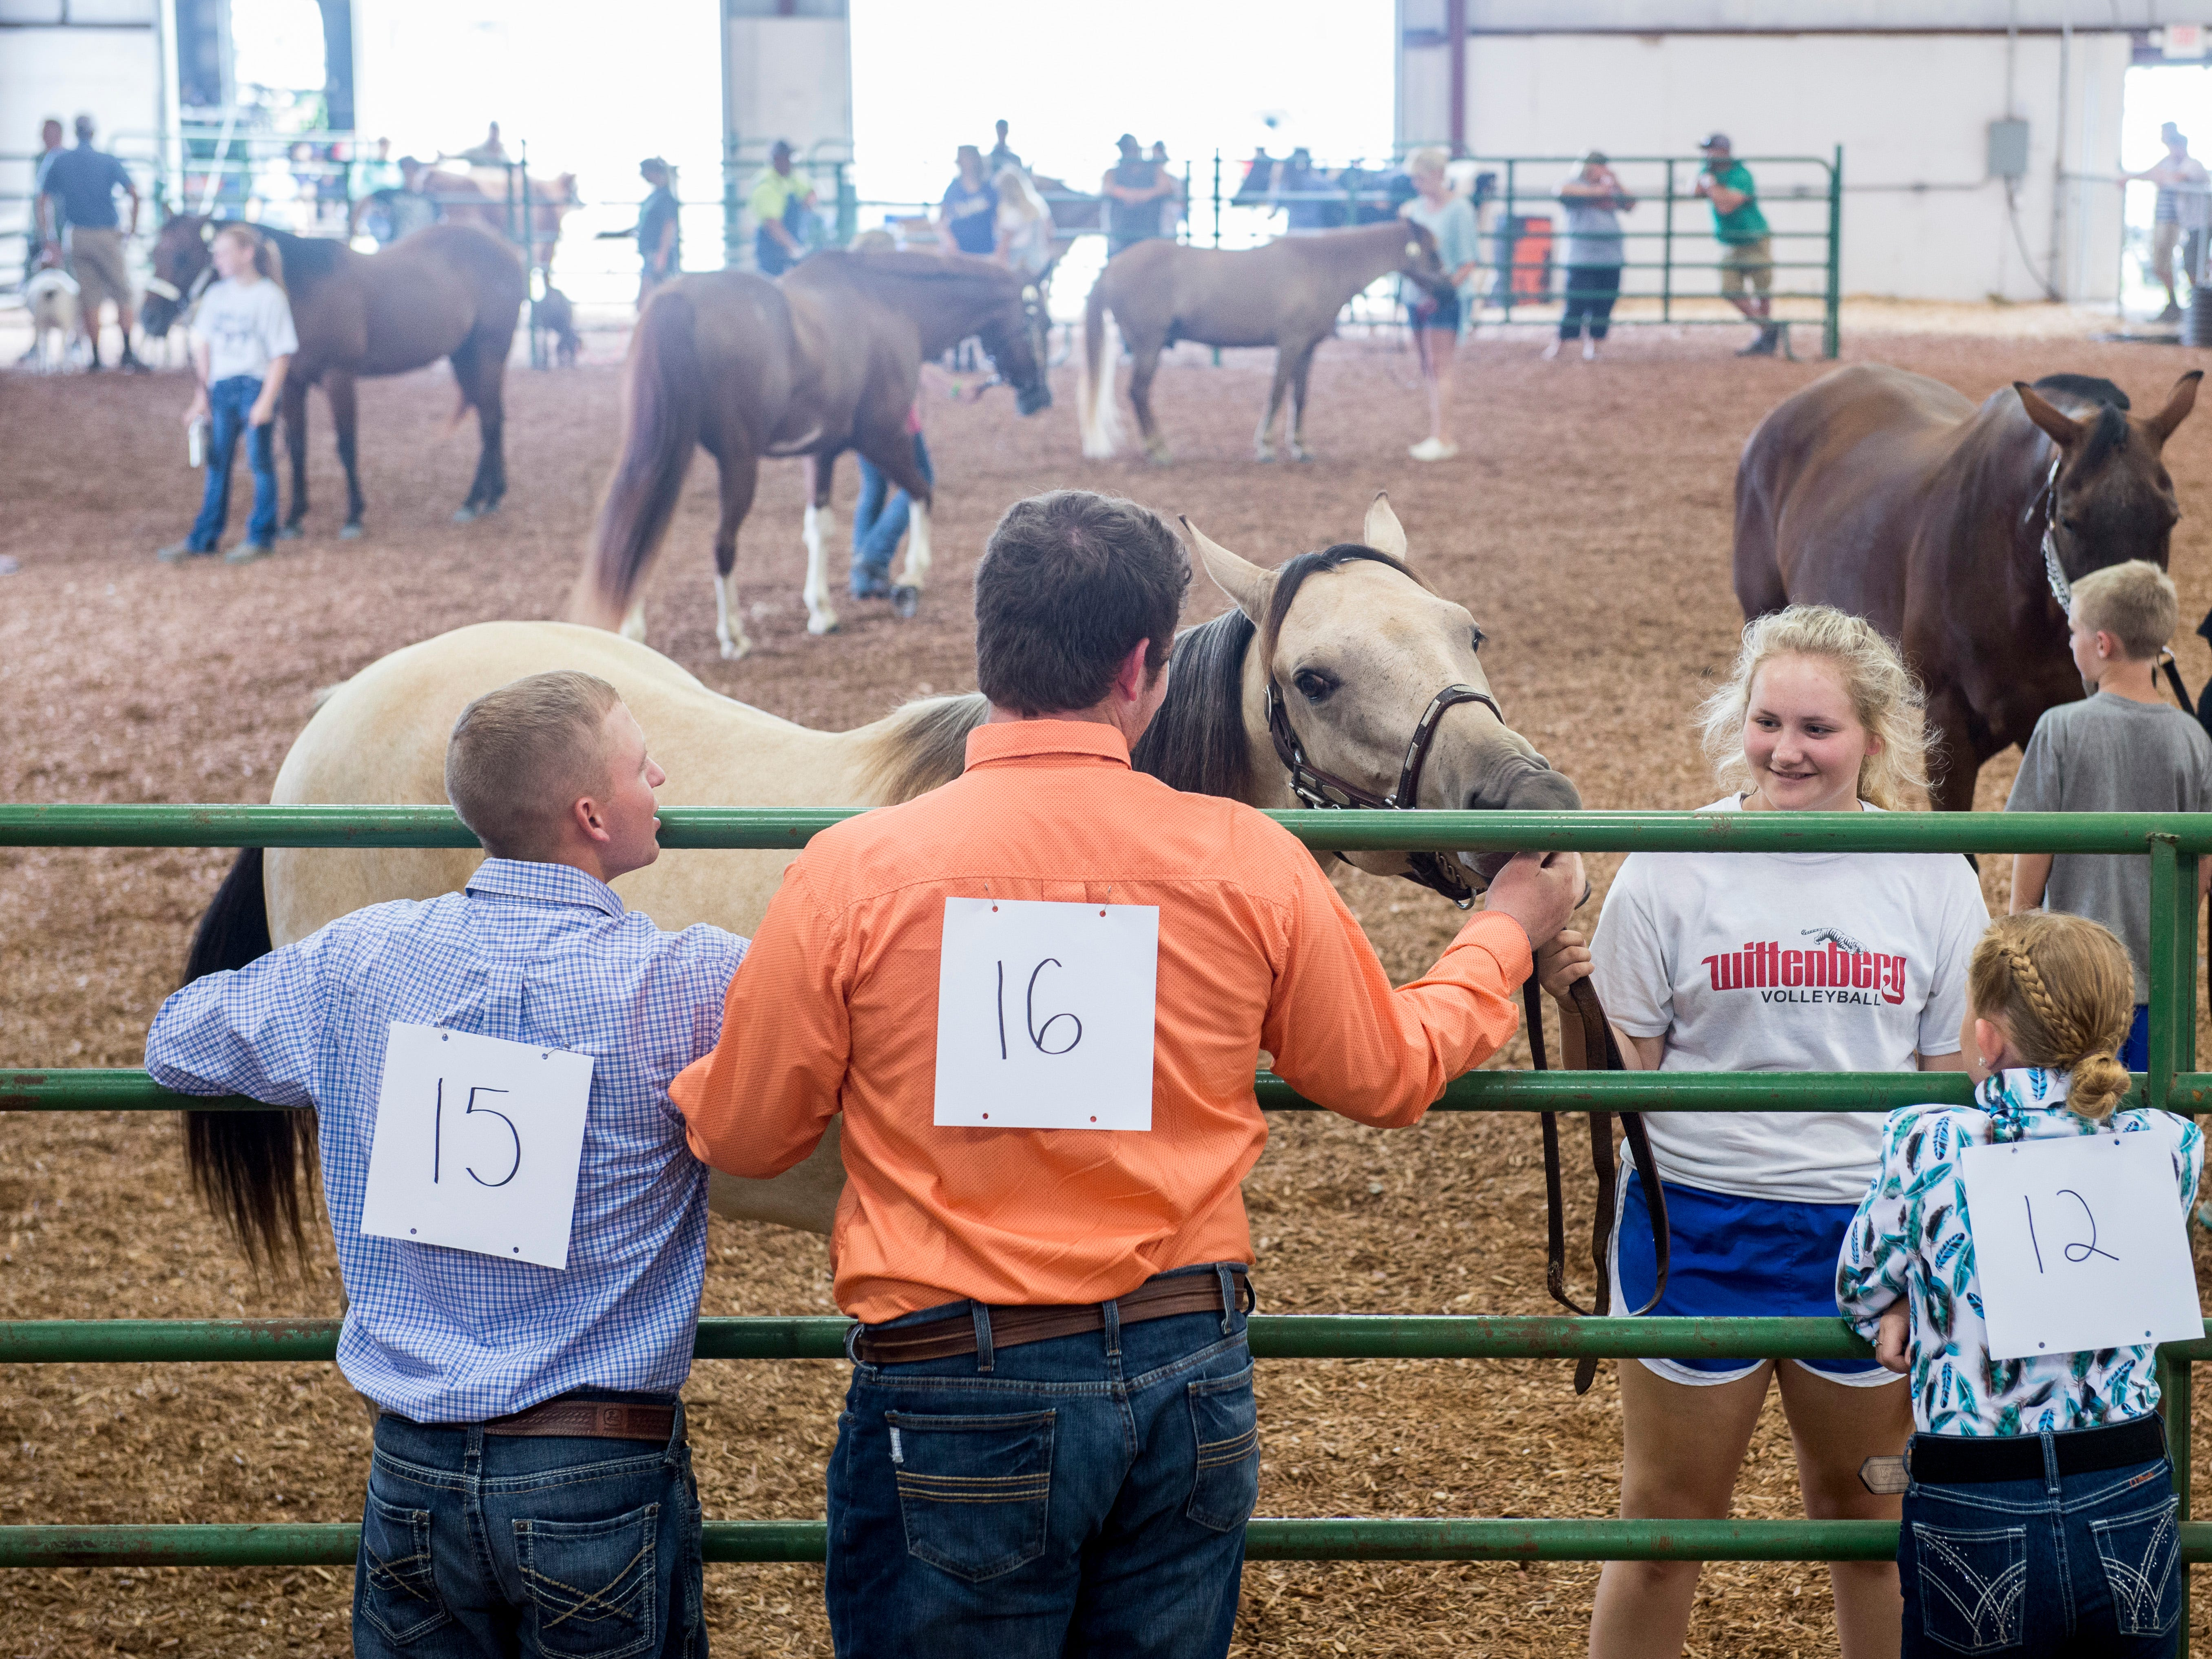 Contestants pet a show horse during the Showman of Showmen Contest in Large Animals at the Ross County Fair on August 10, 2018, in Chillicothe, Ohio.